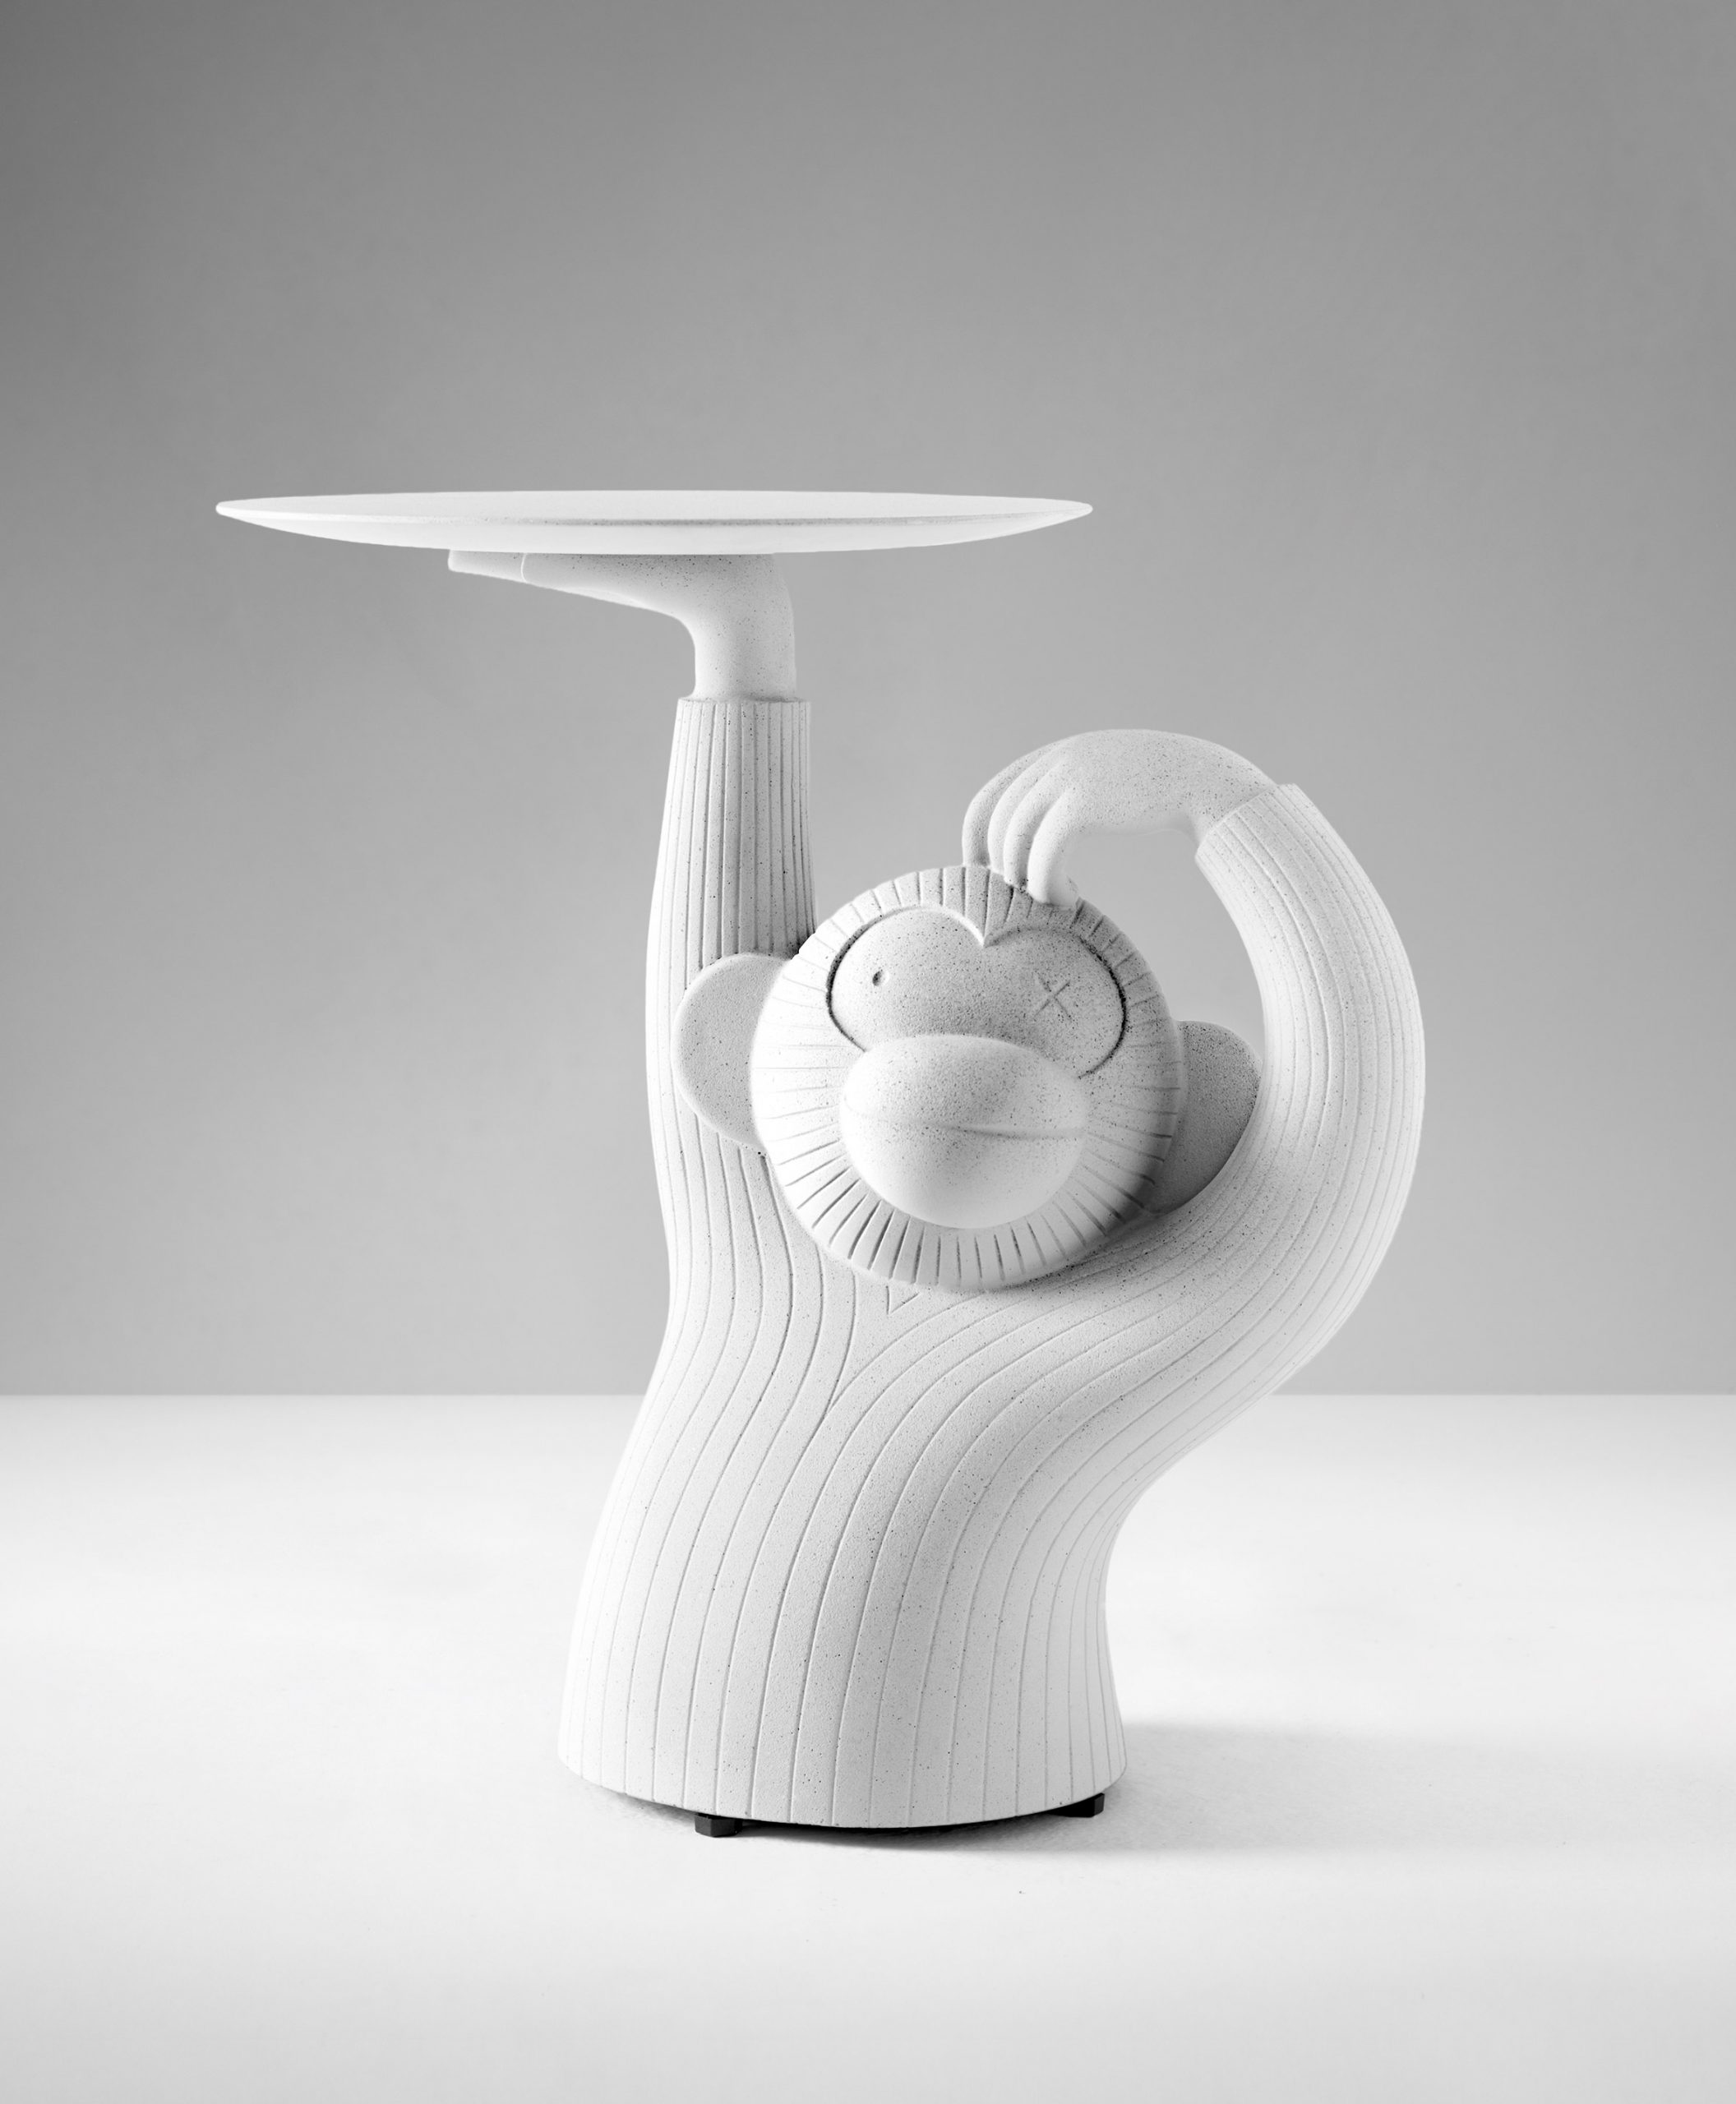 Front view of Monkey side table by Jaime Hayon for BD Barcelona